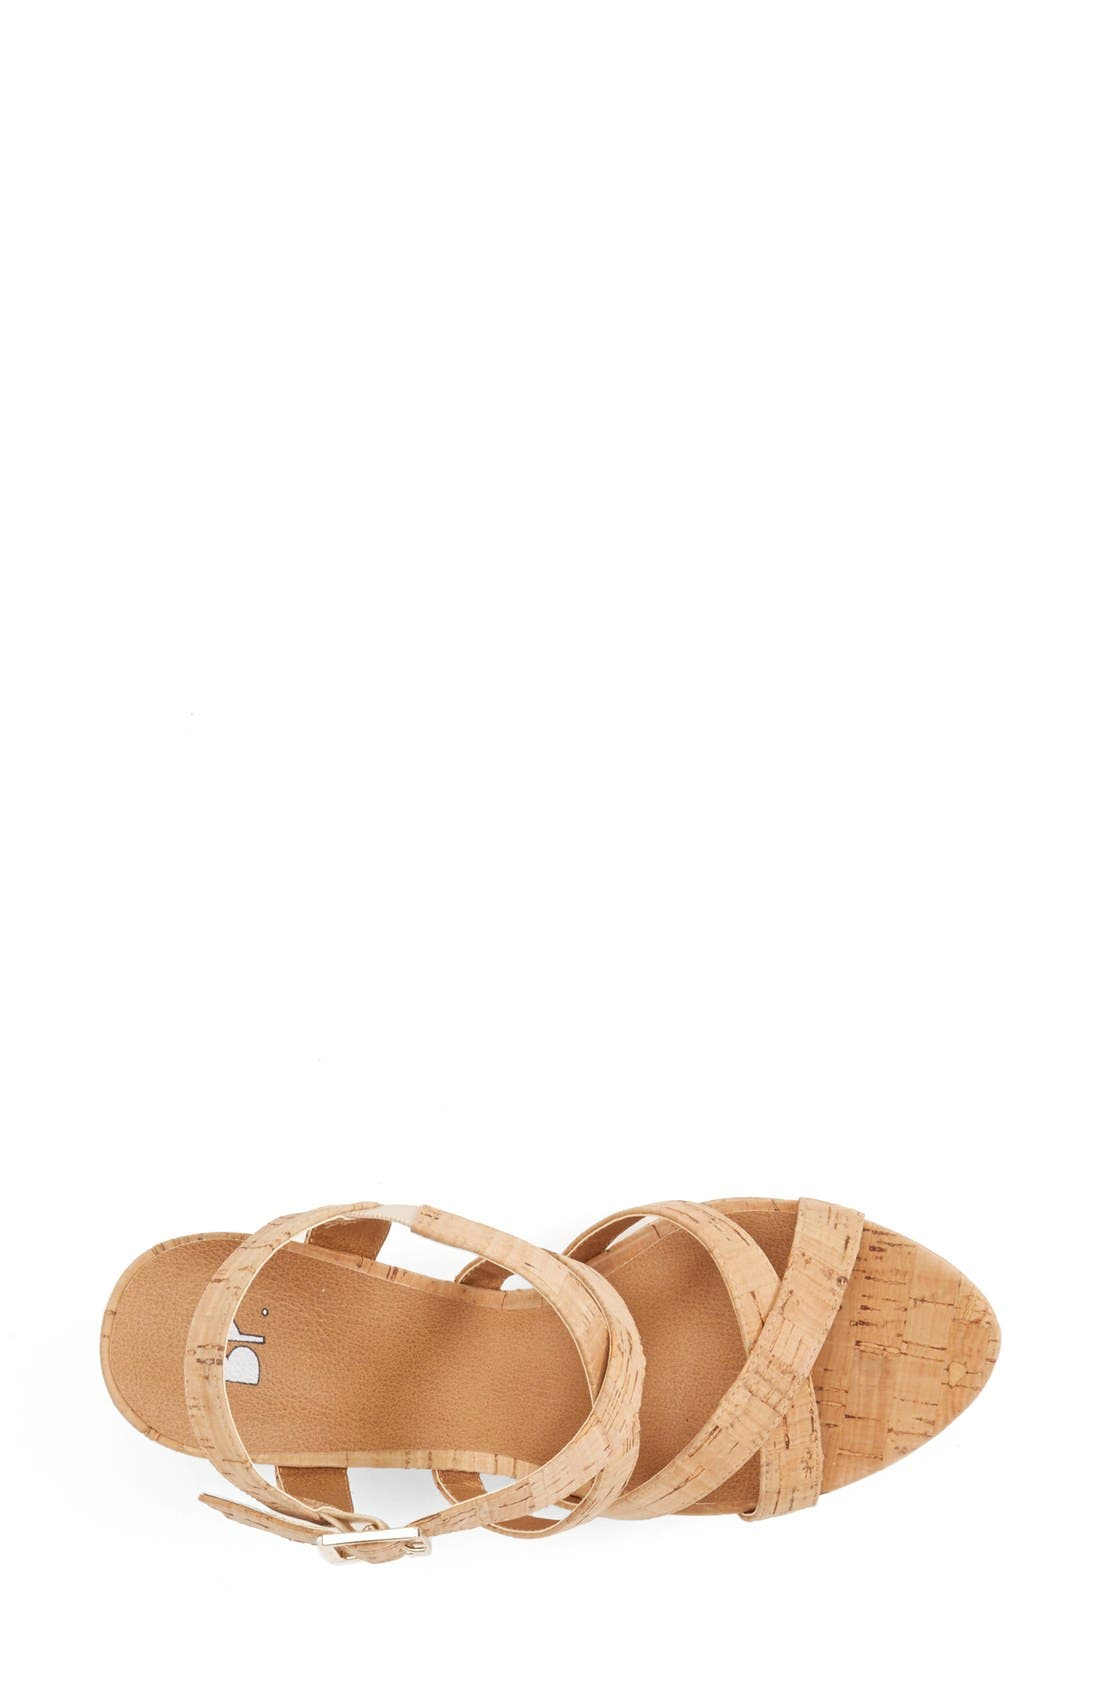 Alternate Image 3  - BP. 'Summers' Wedge Sandal (Women)